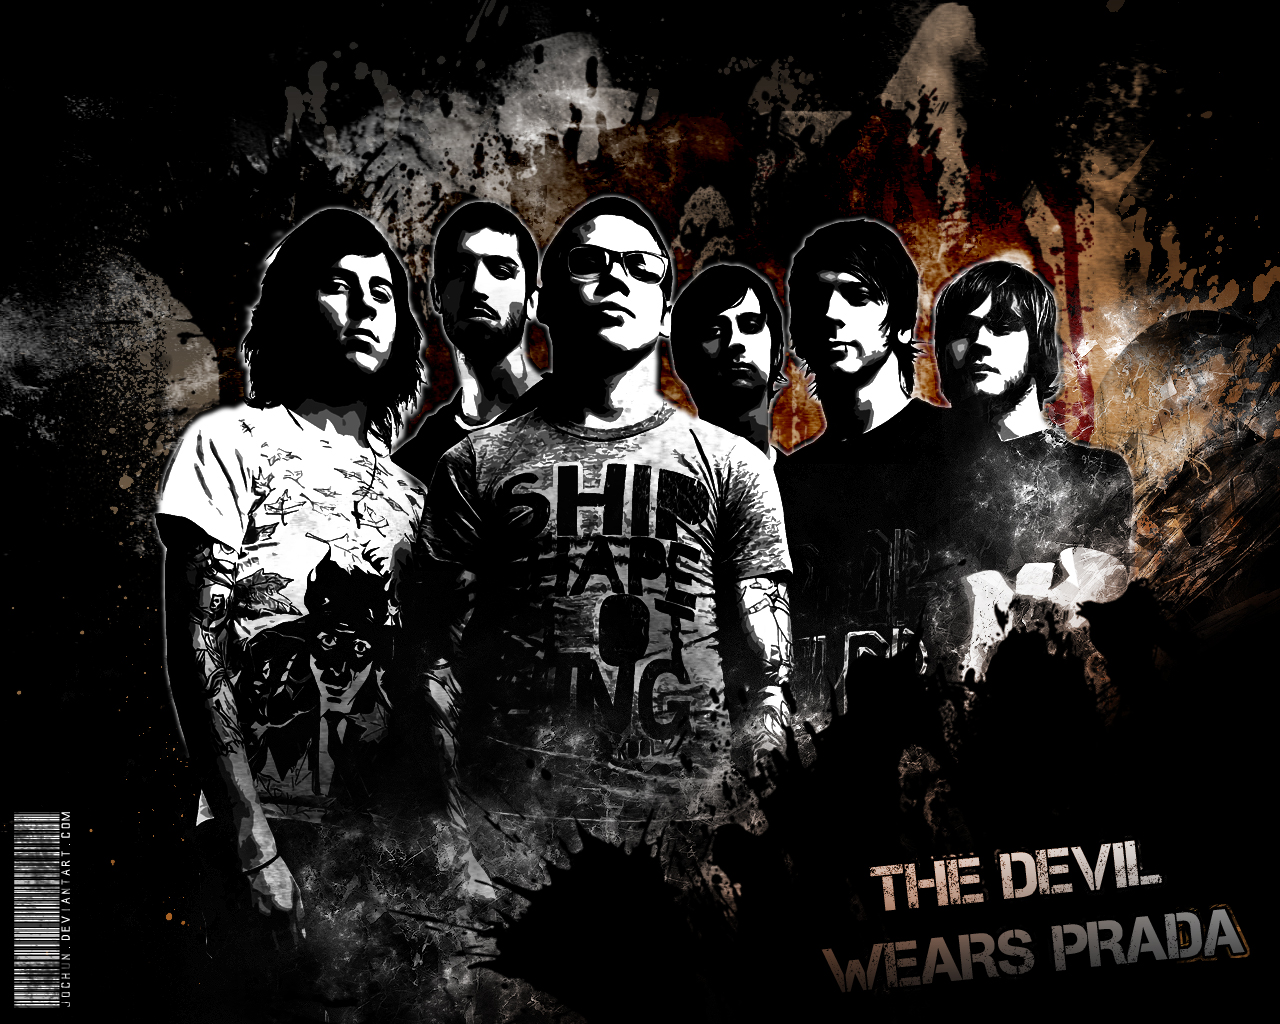 the devil wears prada plagues  CrackBerry The devil wears prada by jochun on DeviantArt 1280x1024